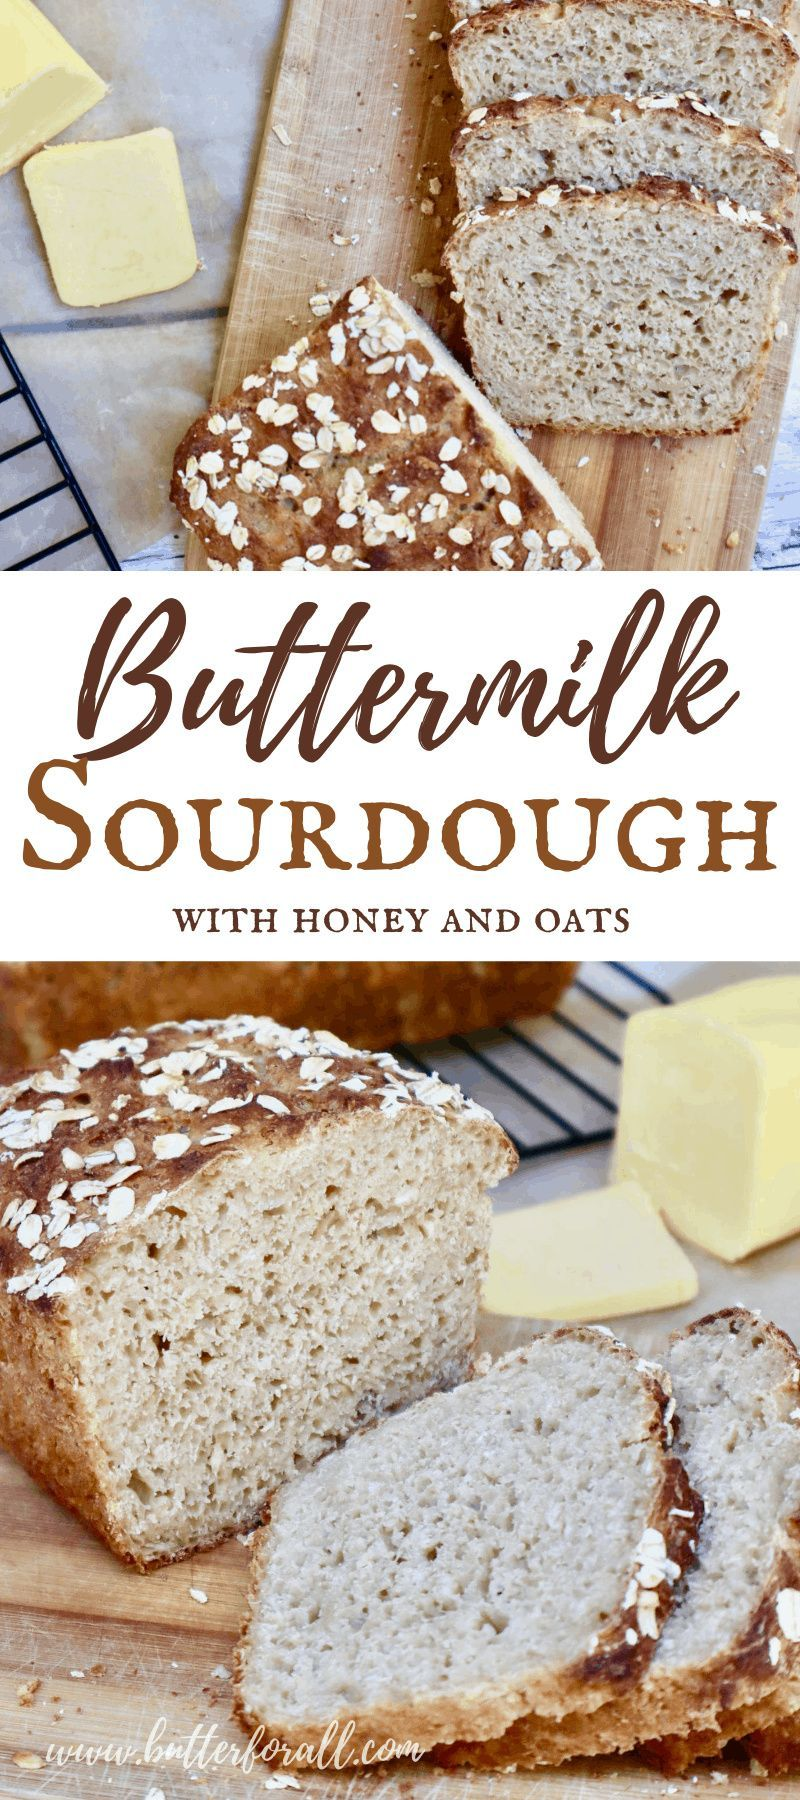 Buttermilk Sourdough Bread With Honey And Oats Recipe In 2020 Real Food Recipes Bread Food